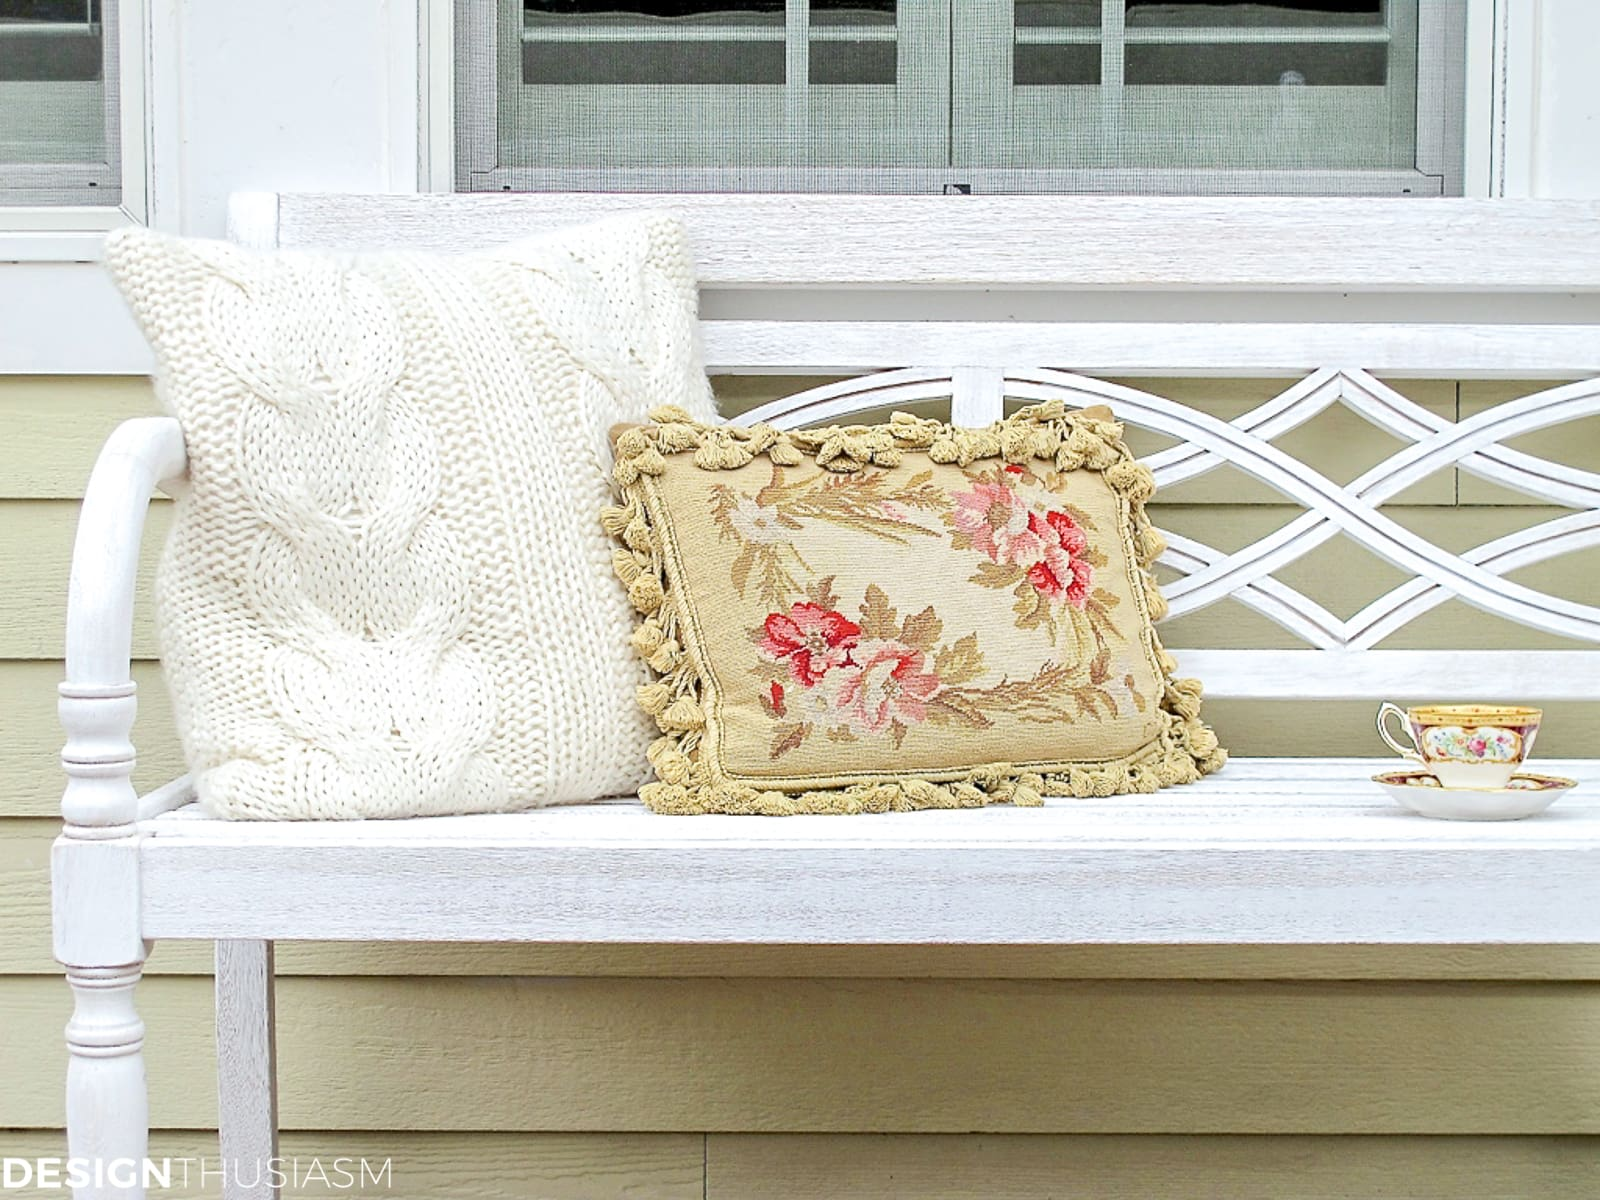 outdoor fall decorations with a whitewashed bench and fall pillows